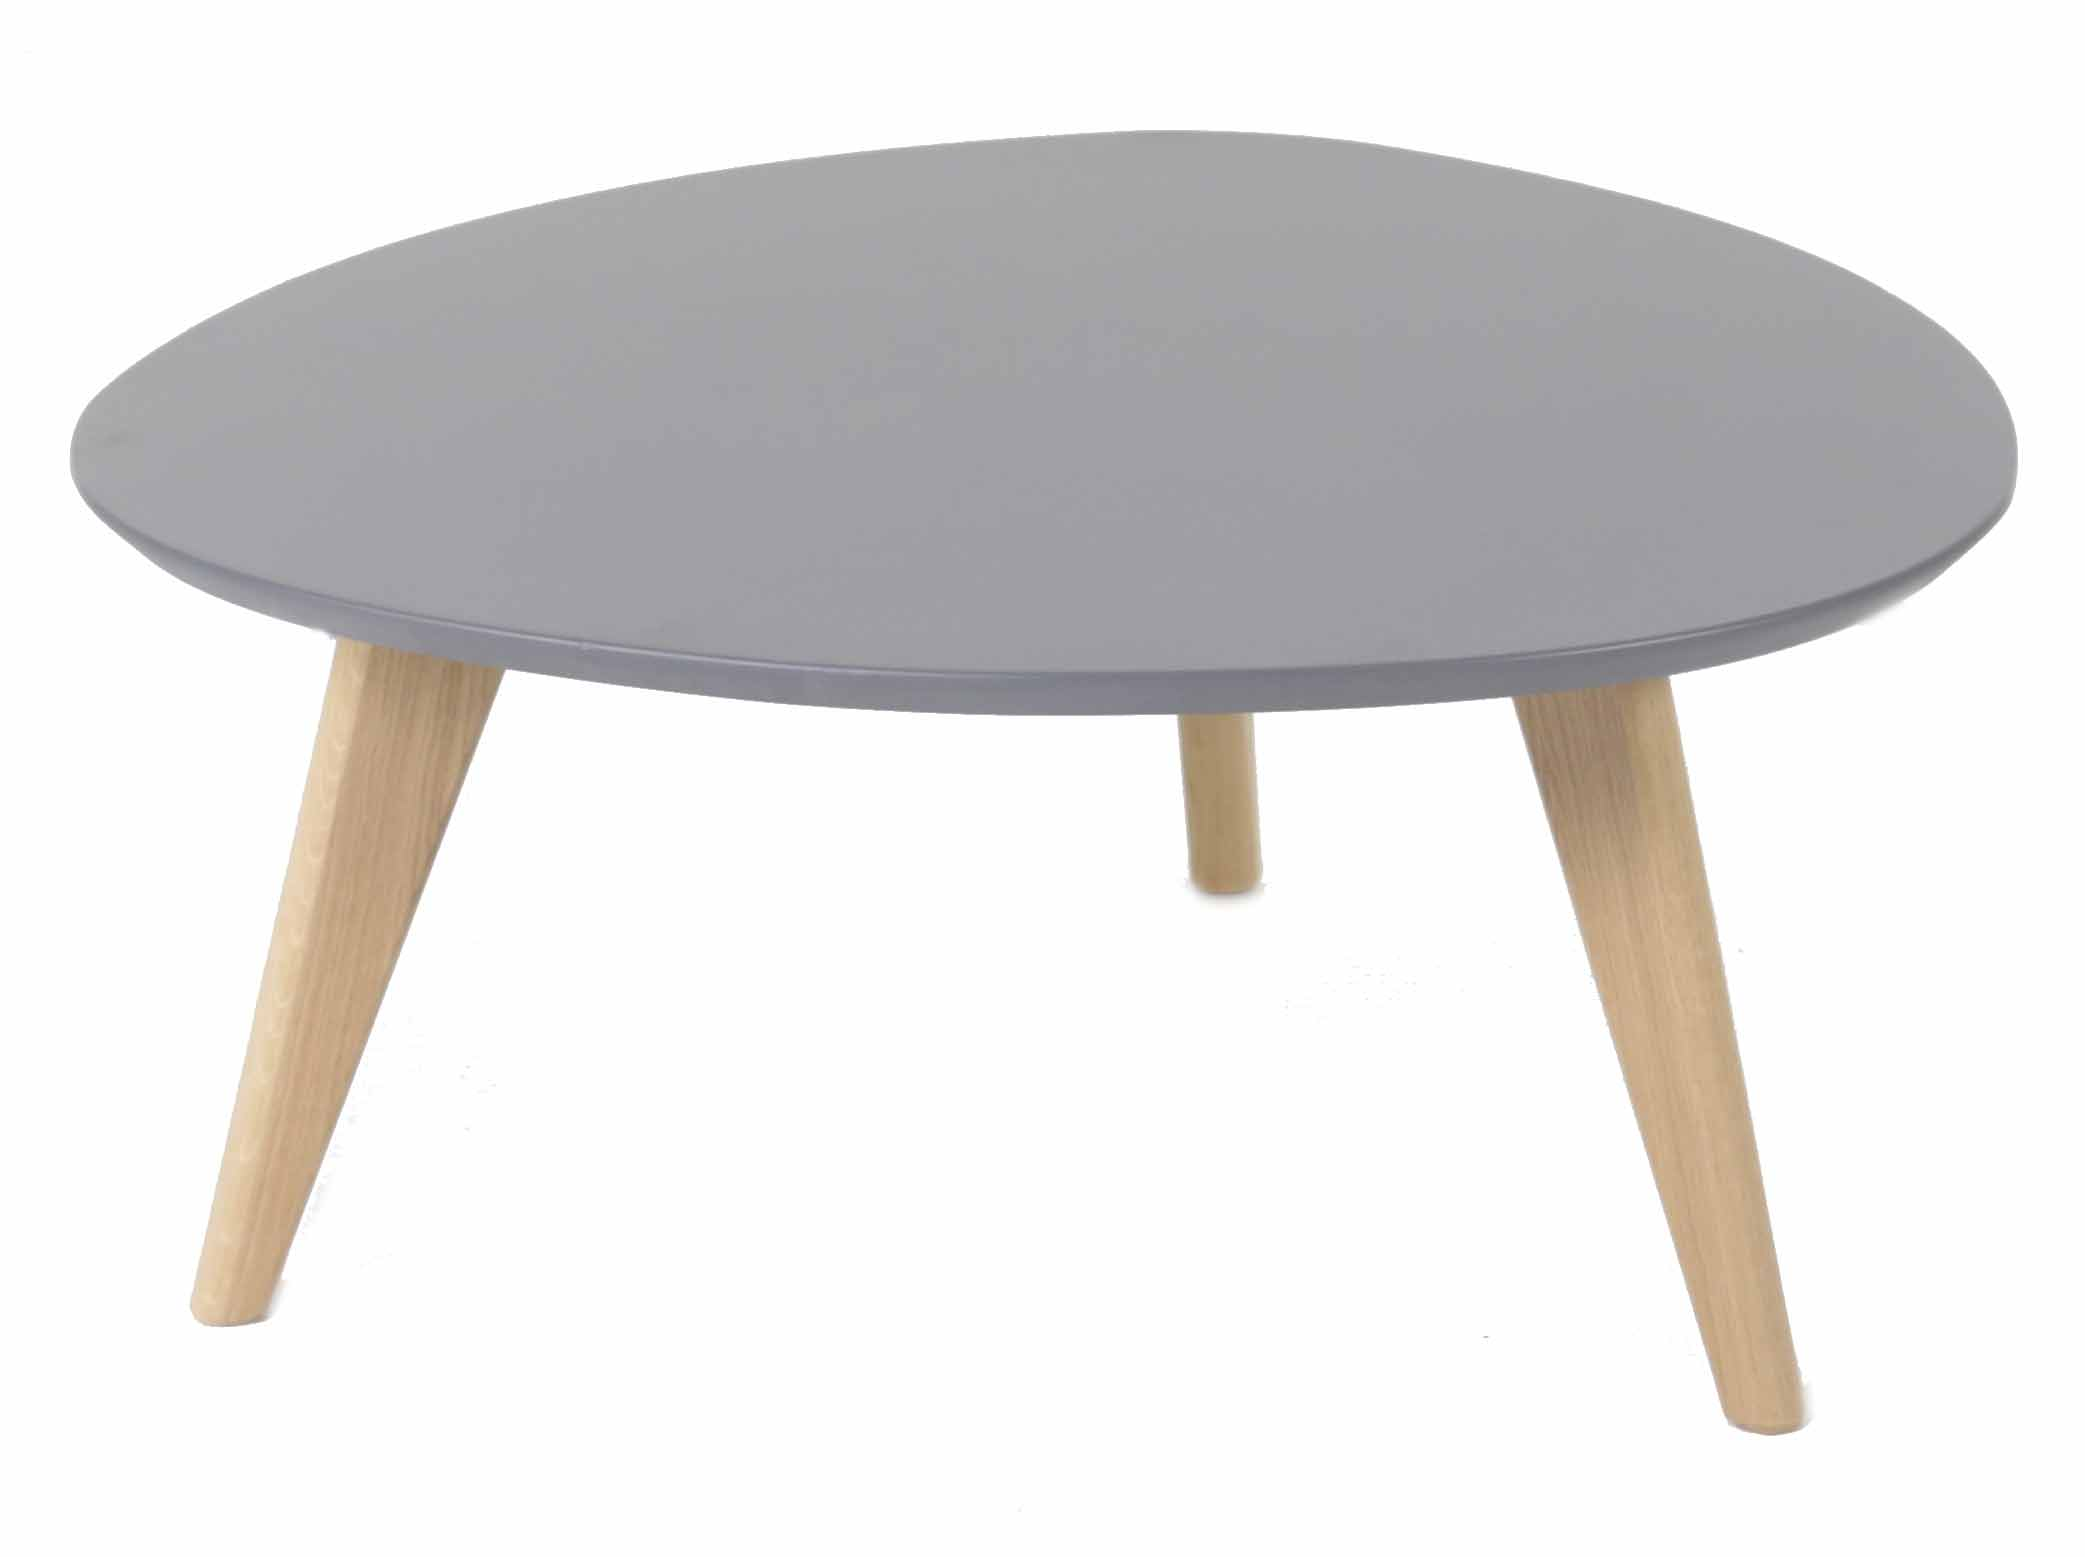 Table basse gigogne ronde - Table basse ronde pas chere ...